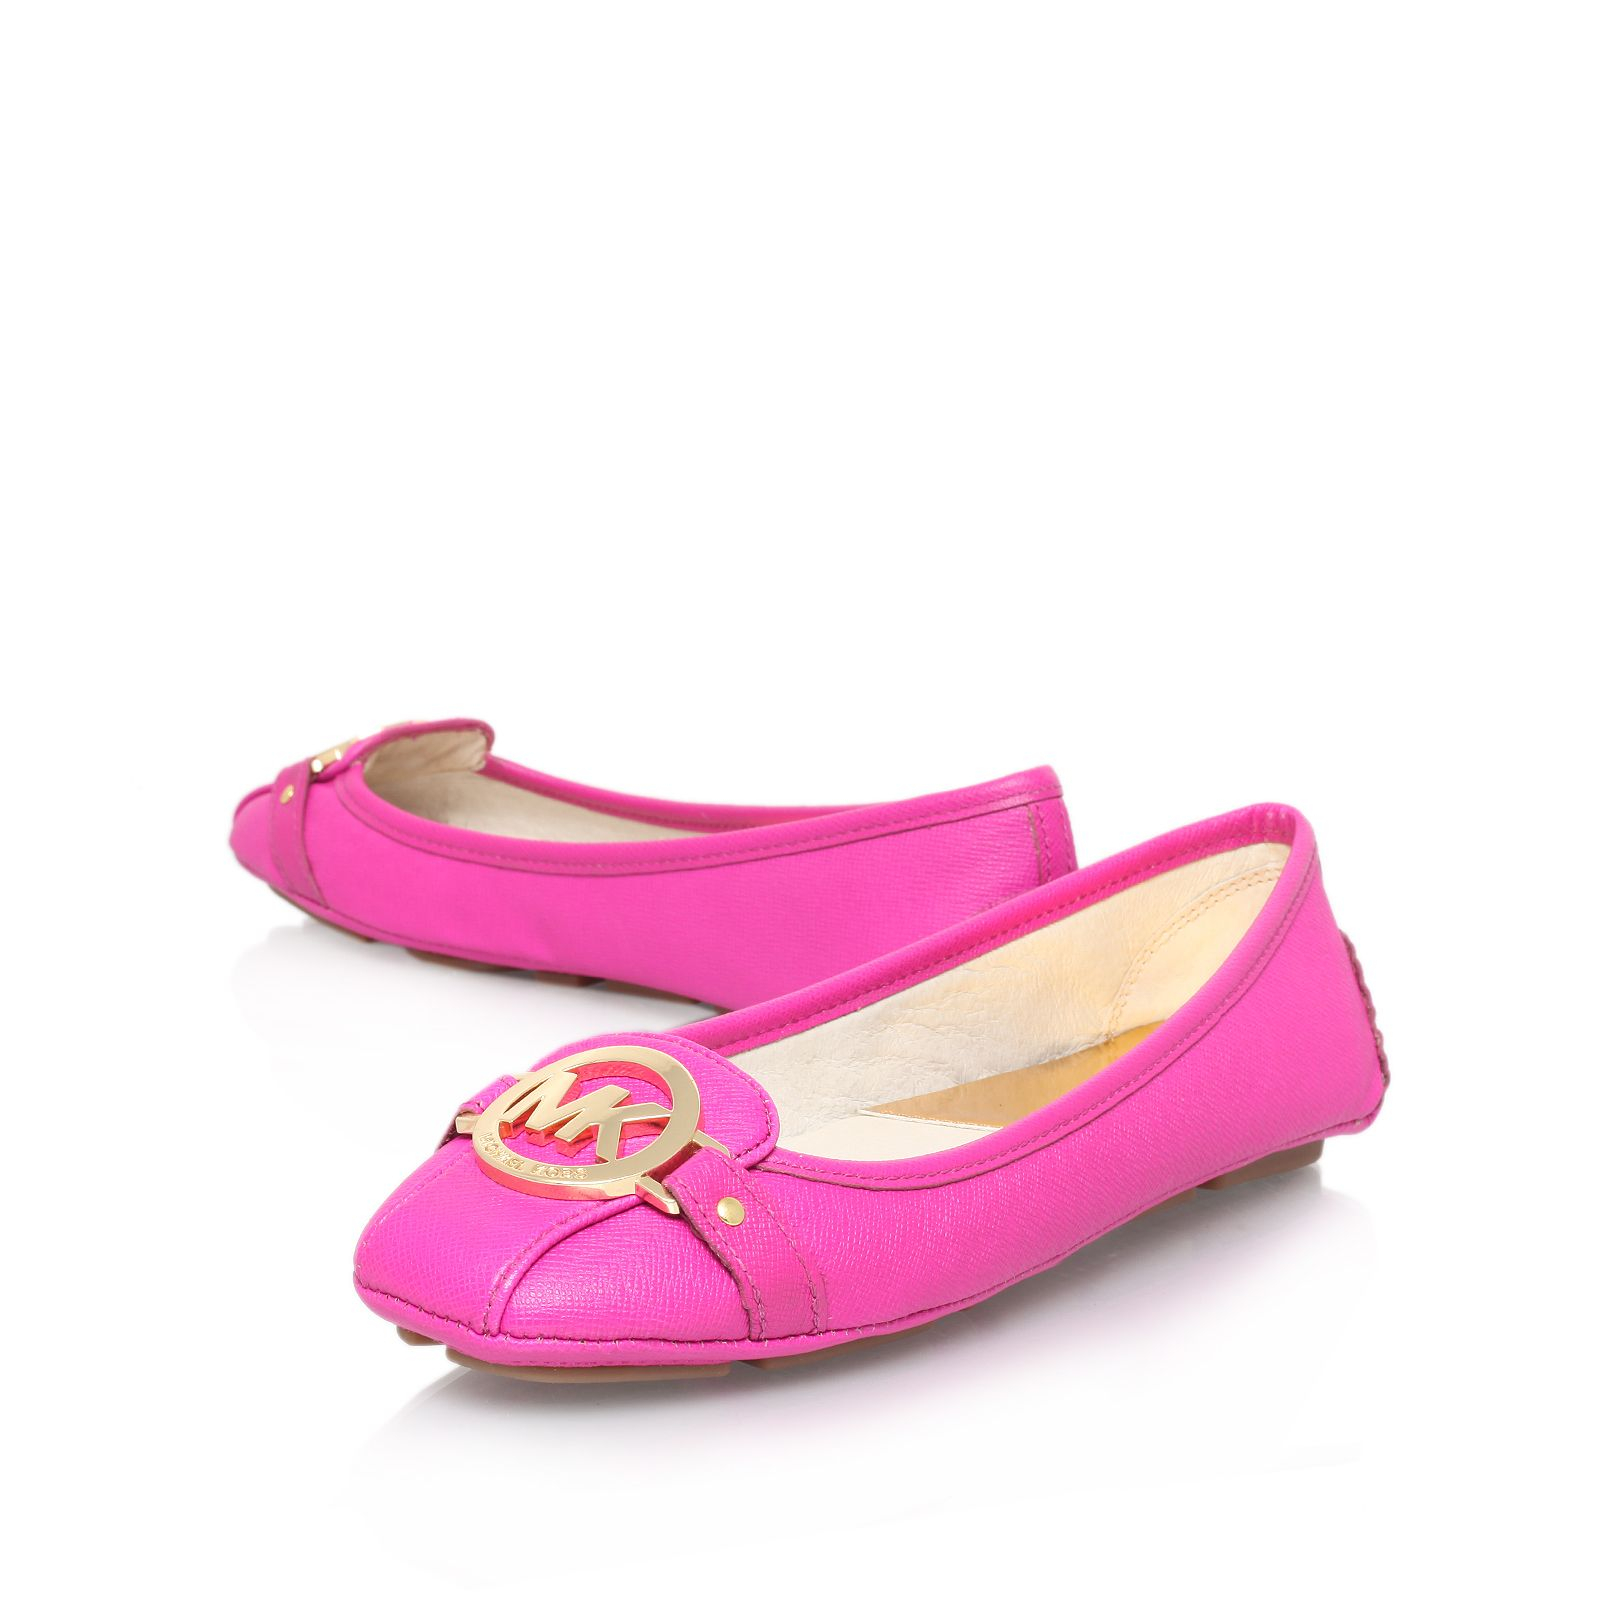 michael kors fulton moc ballerina shoes in pink lyst